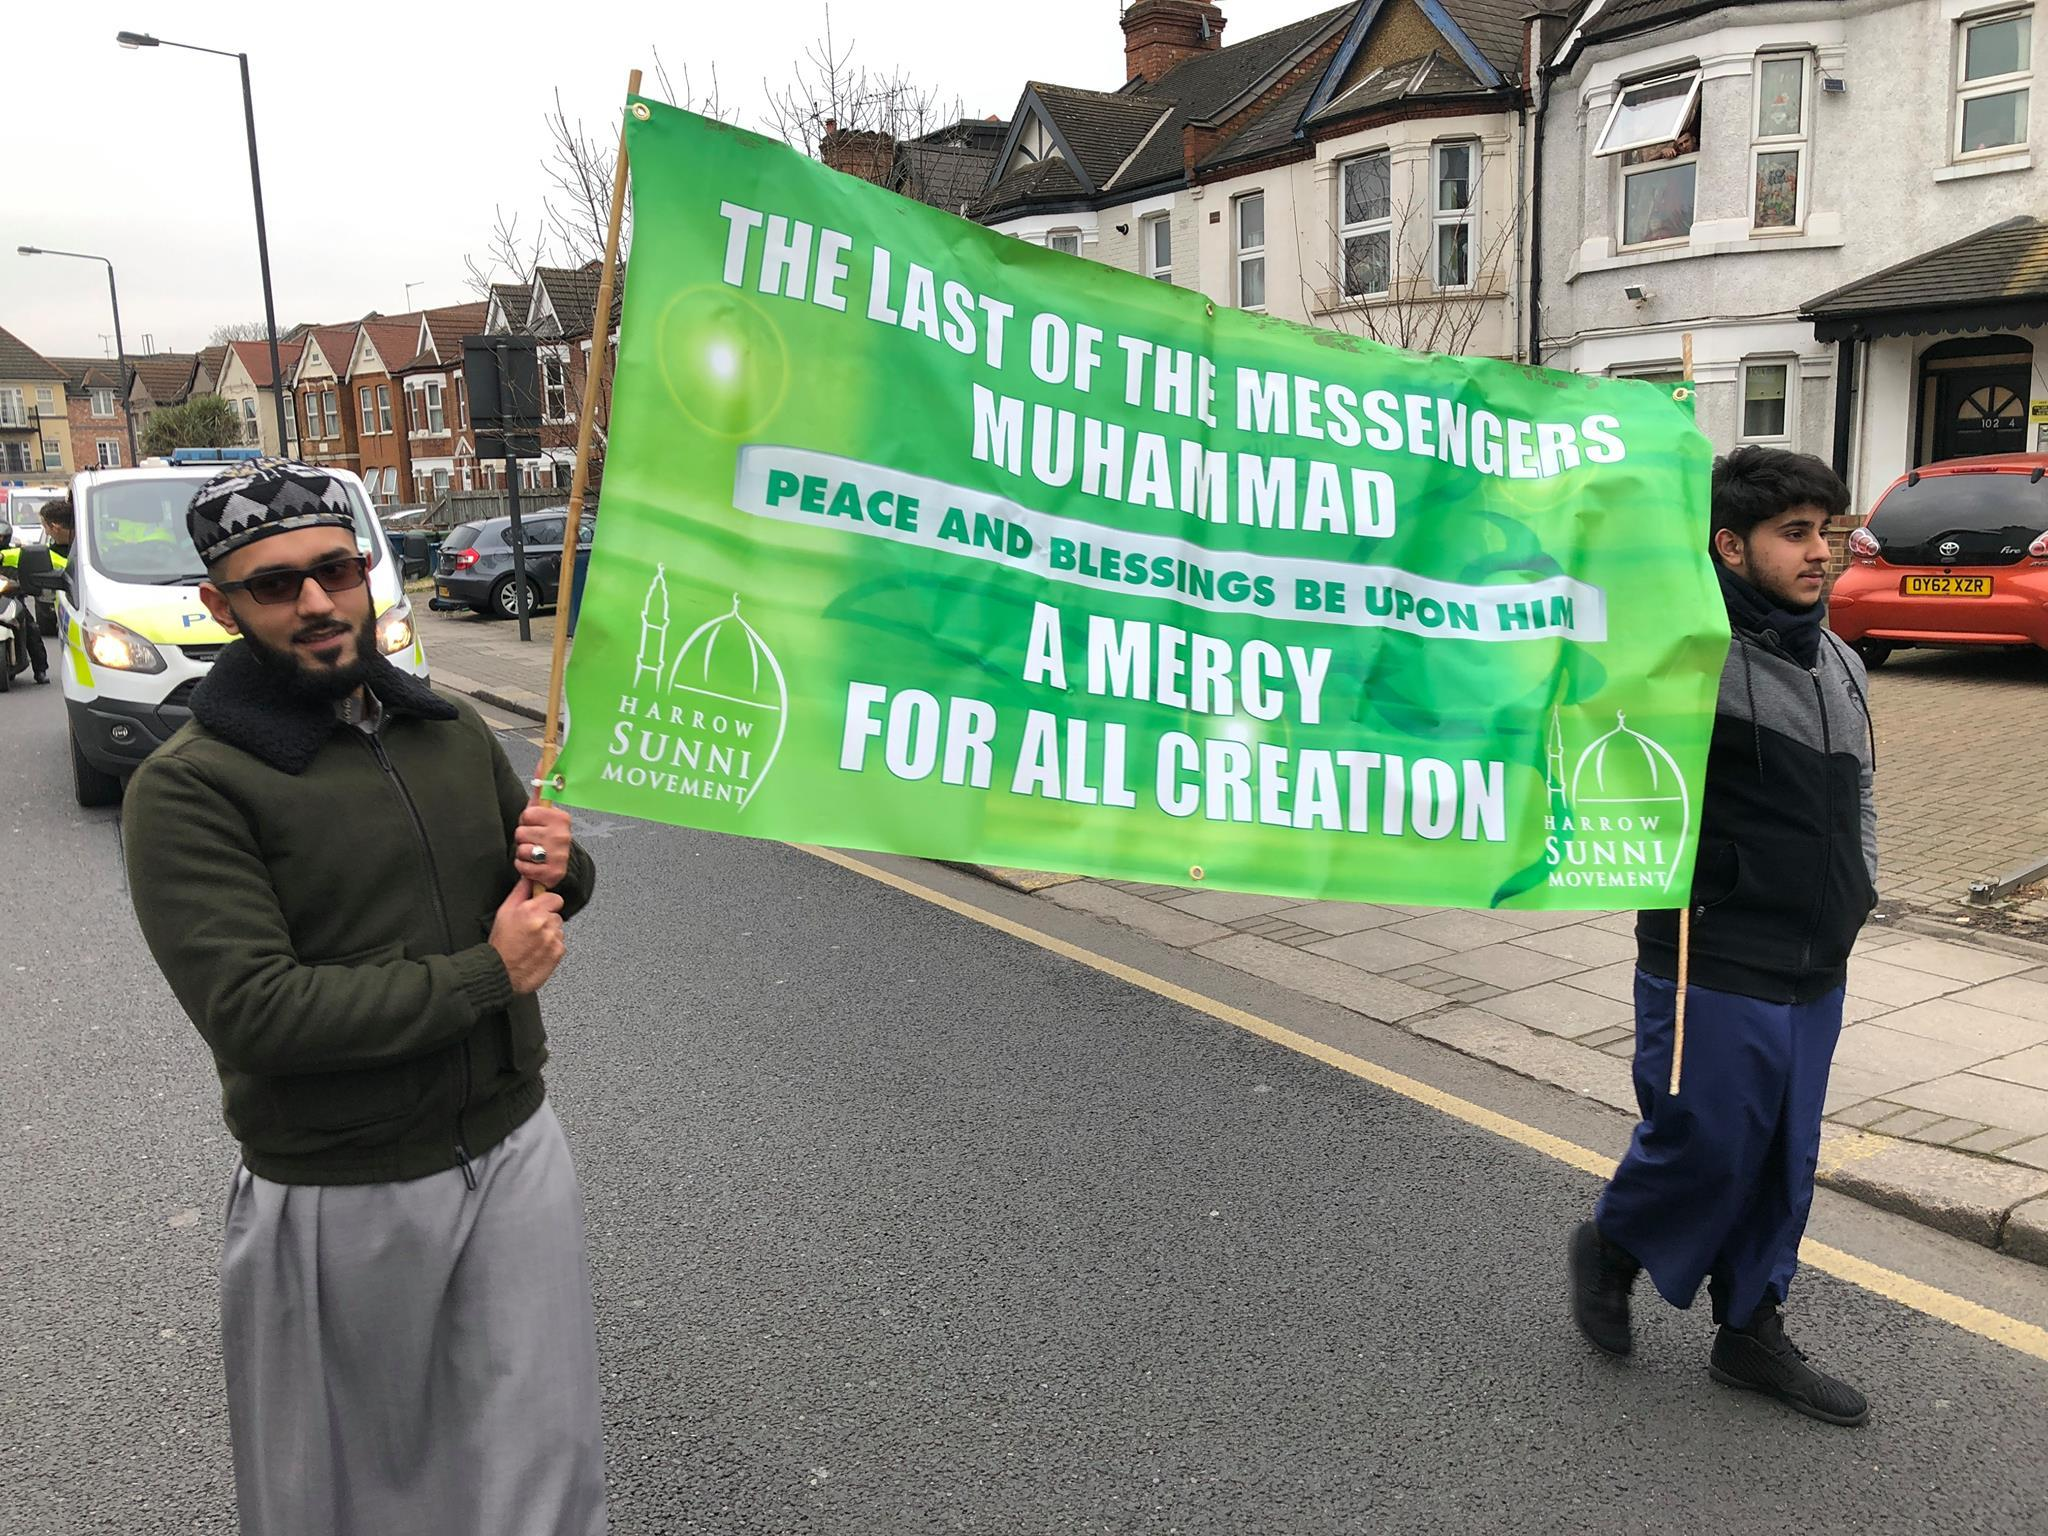 The fifth annual Milad in Harrow commemorating the Prophet Muhammad's birthday